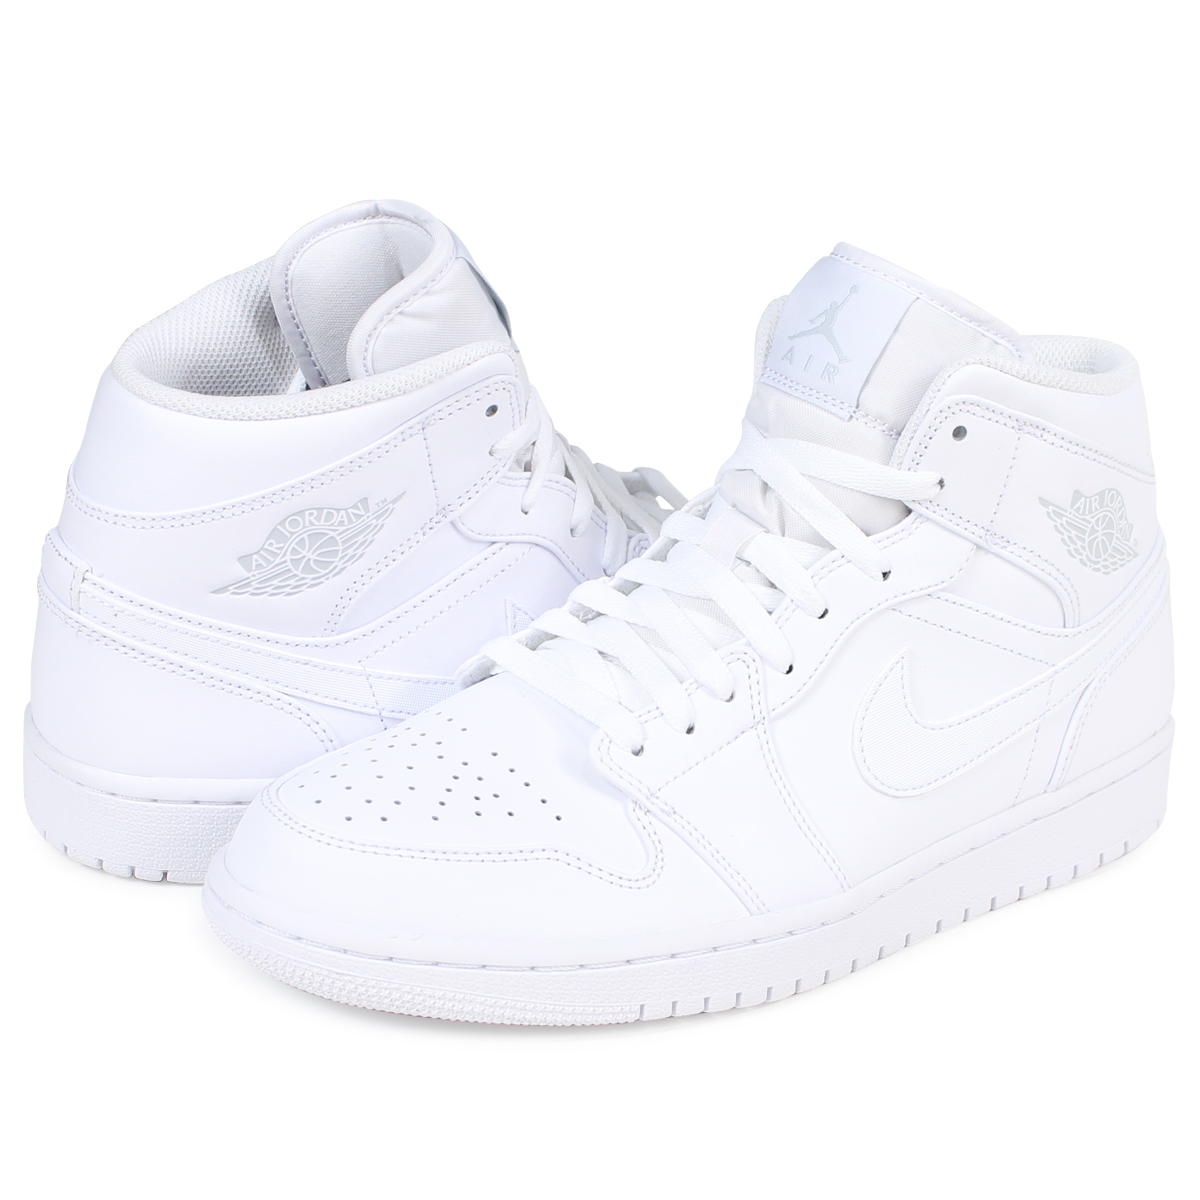 reputable site ab117 000b0 Nike NIKE Air Jordan 1 sneakers AIR JORDAN 1 MID 554,724-104 men's shoes  white white [193]